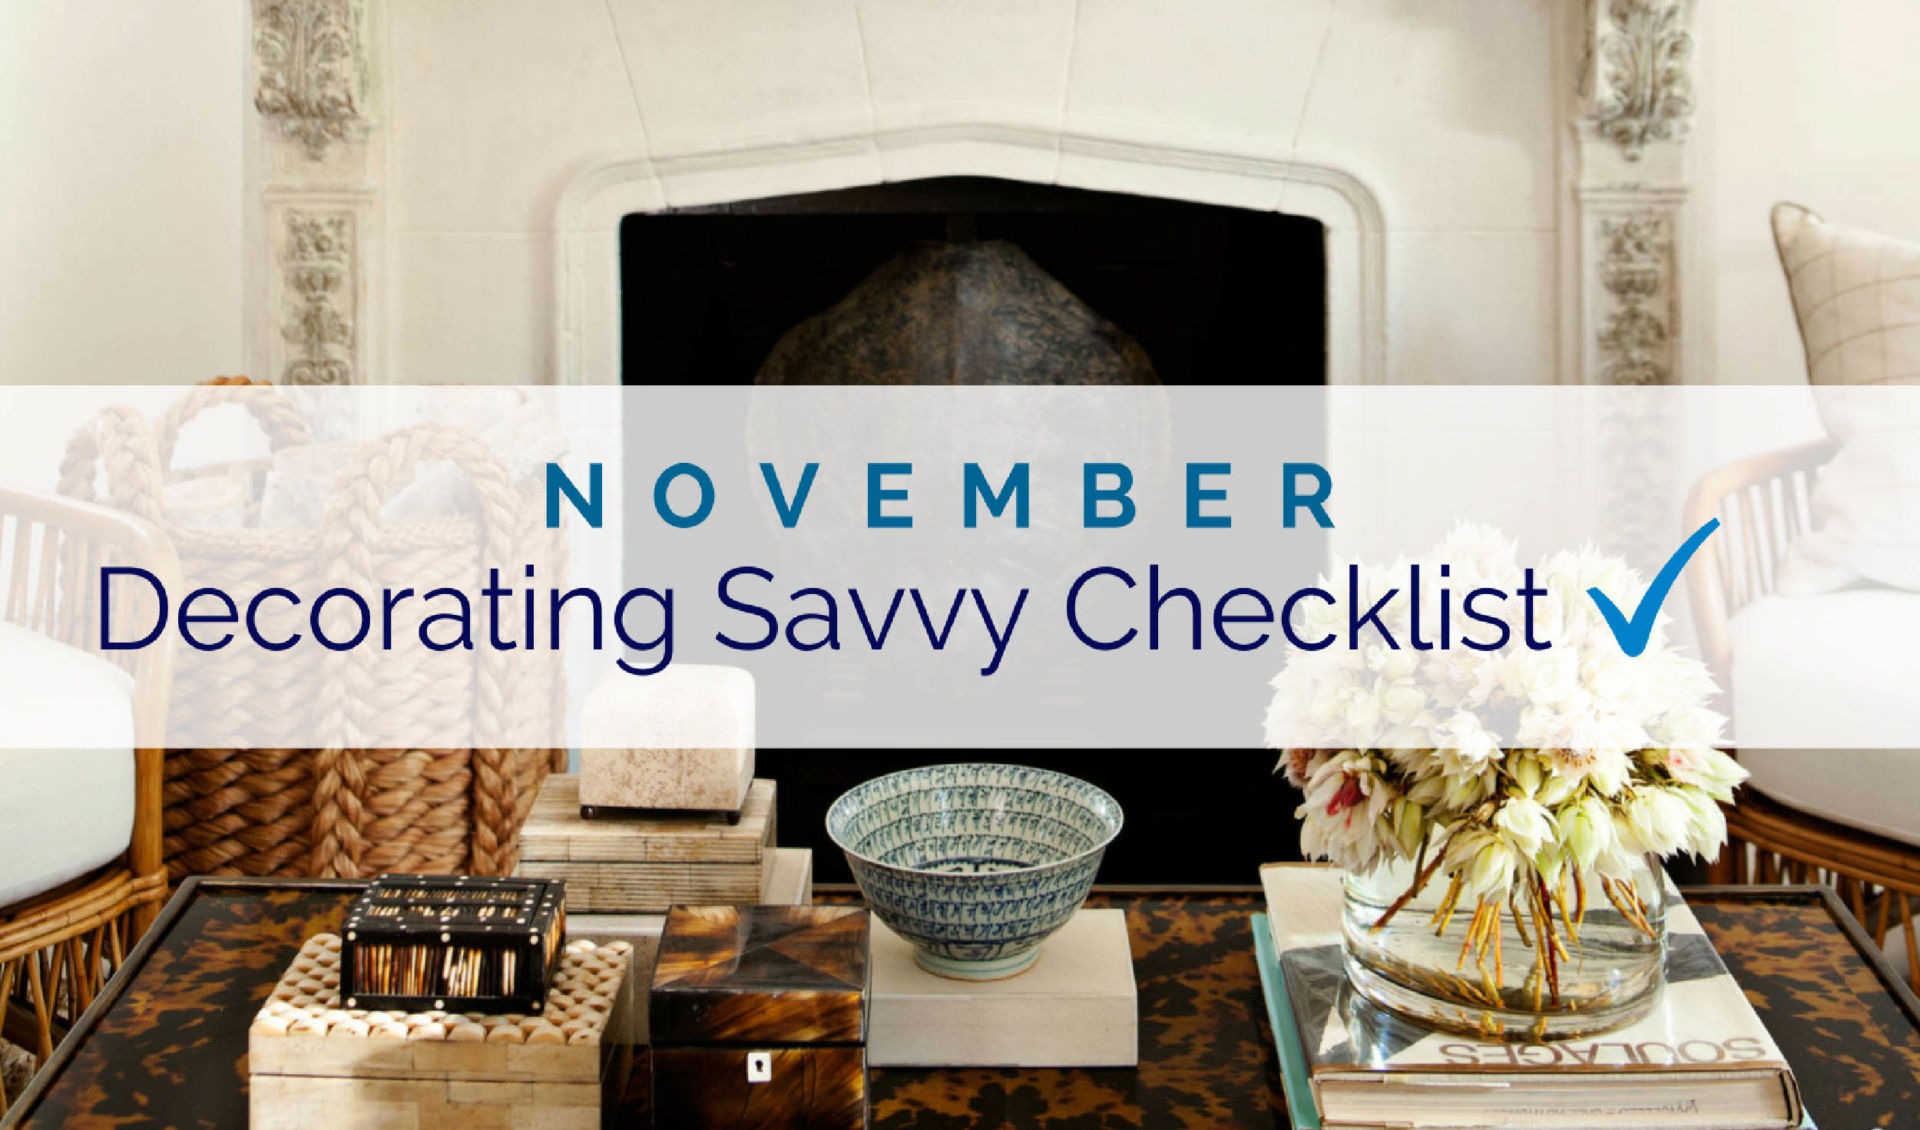 November Decorating Savvy Checklist